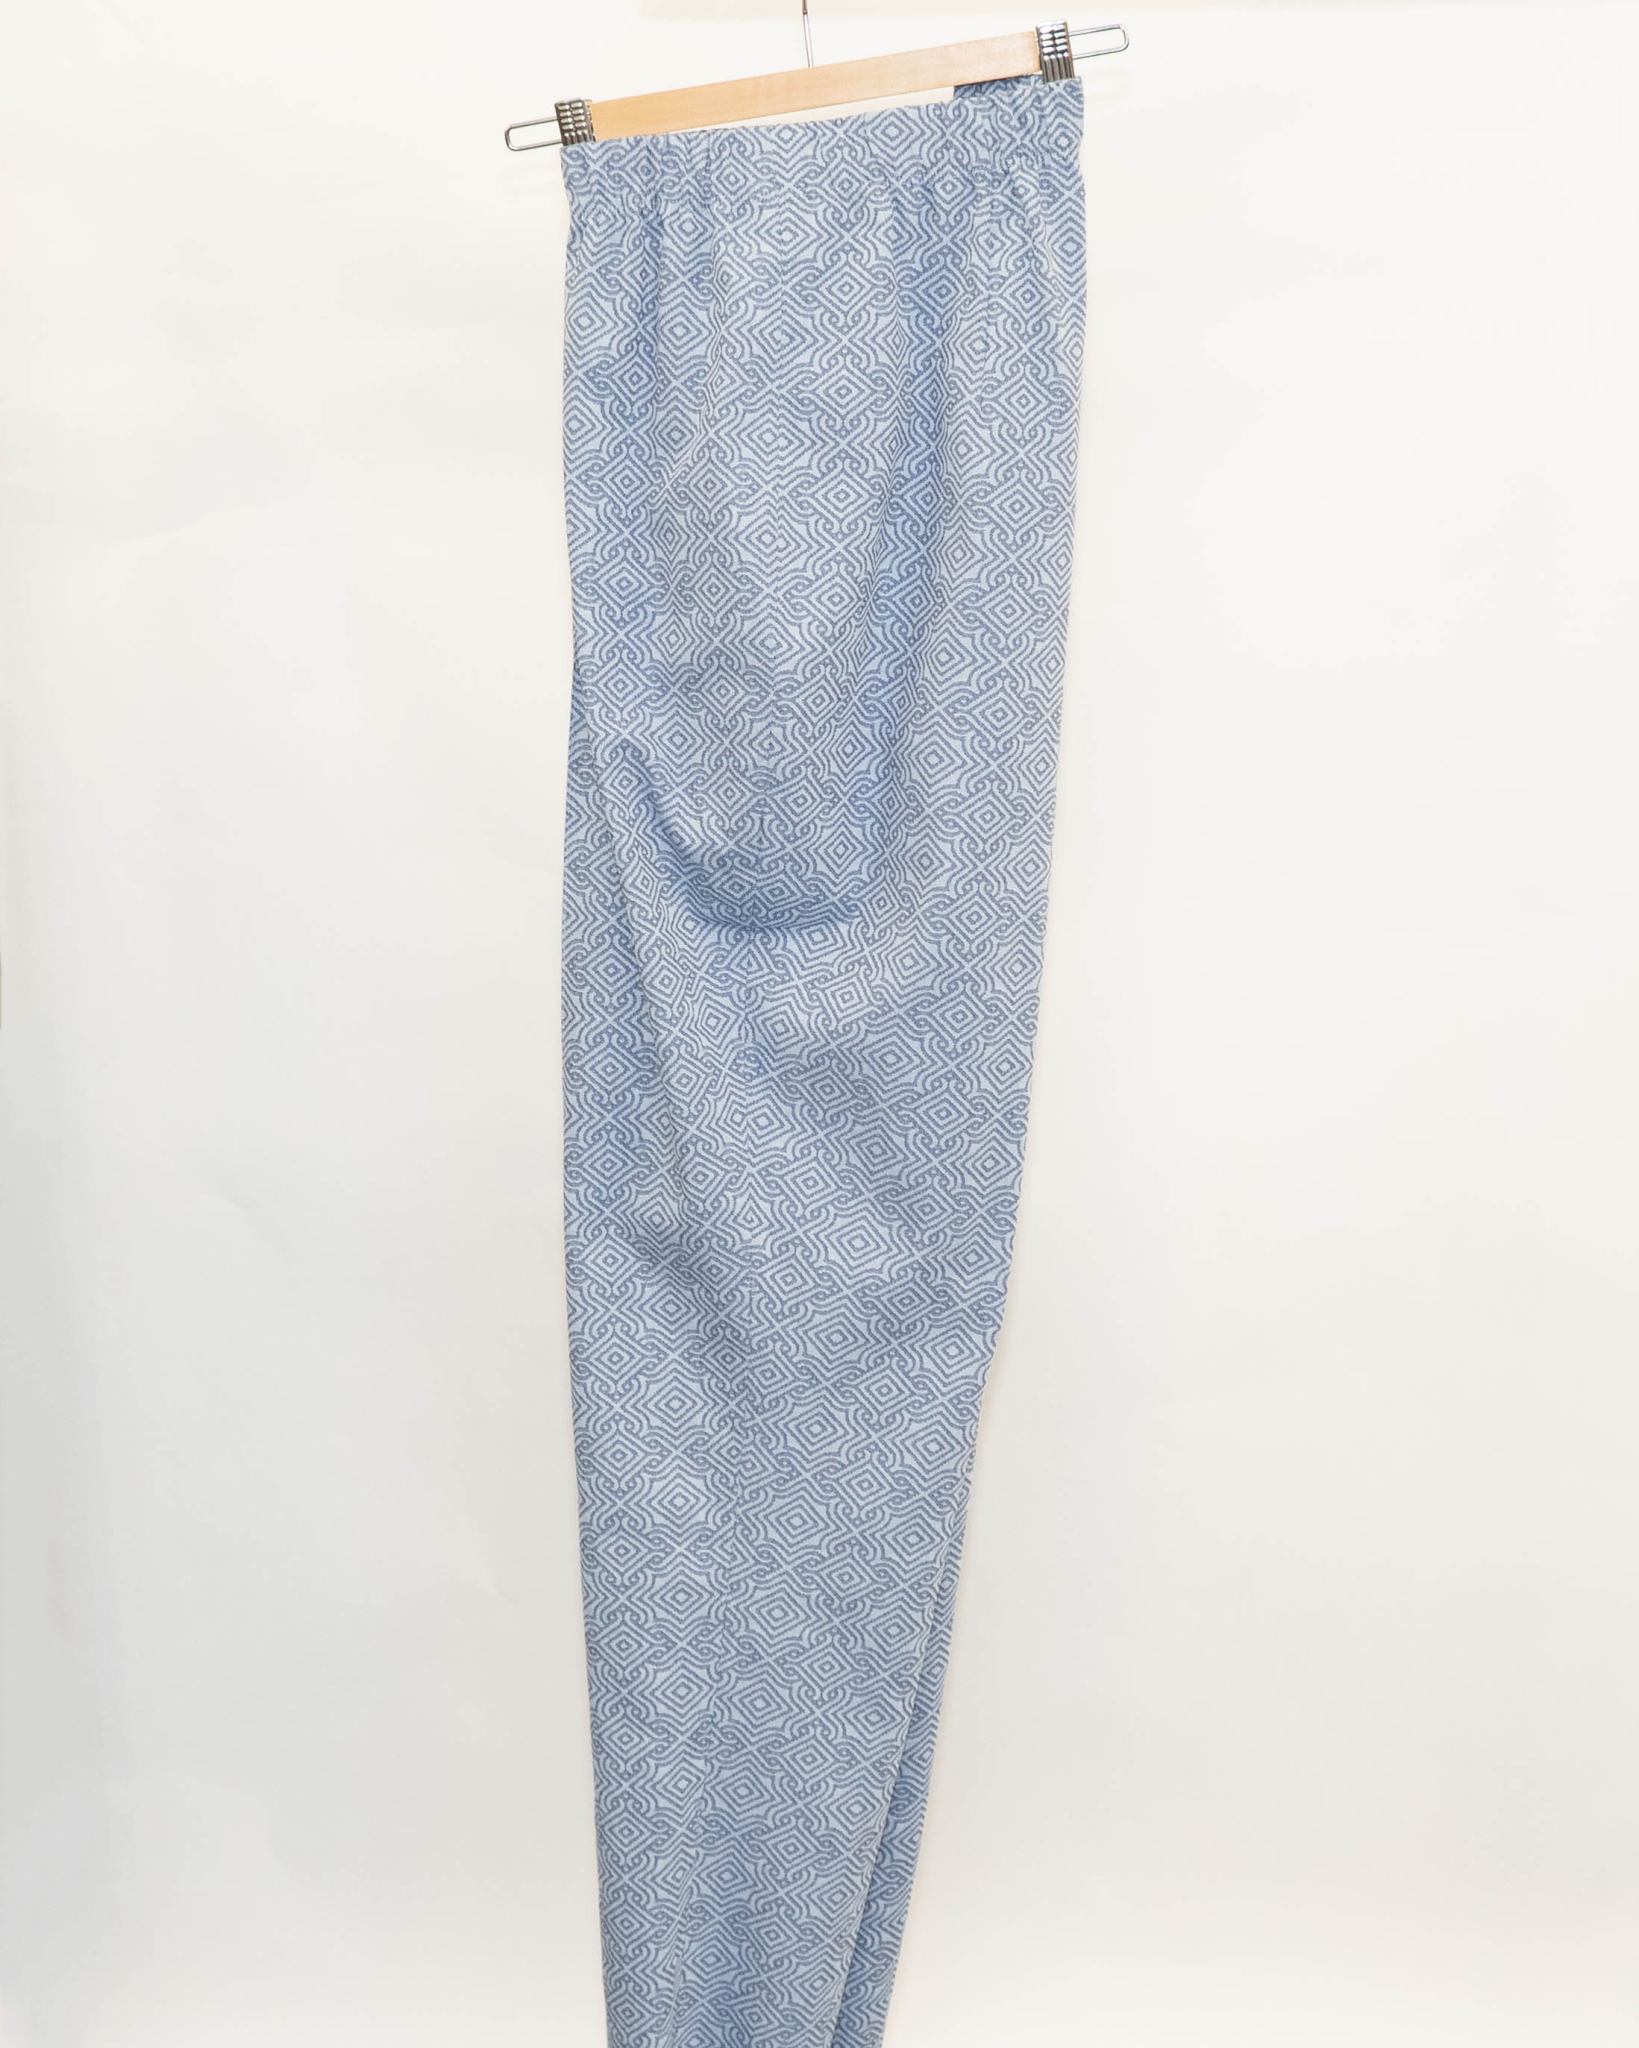 MOSAIC Trousers in Cotton stretch-1